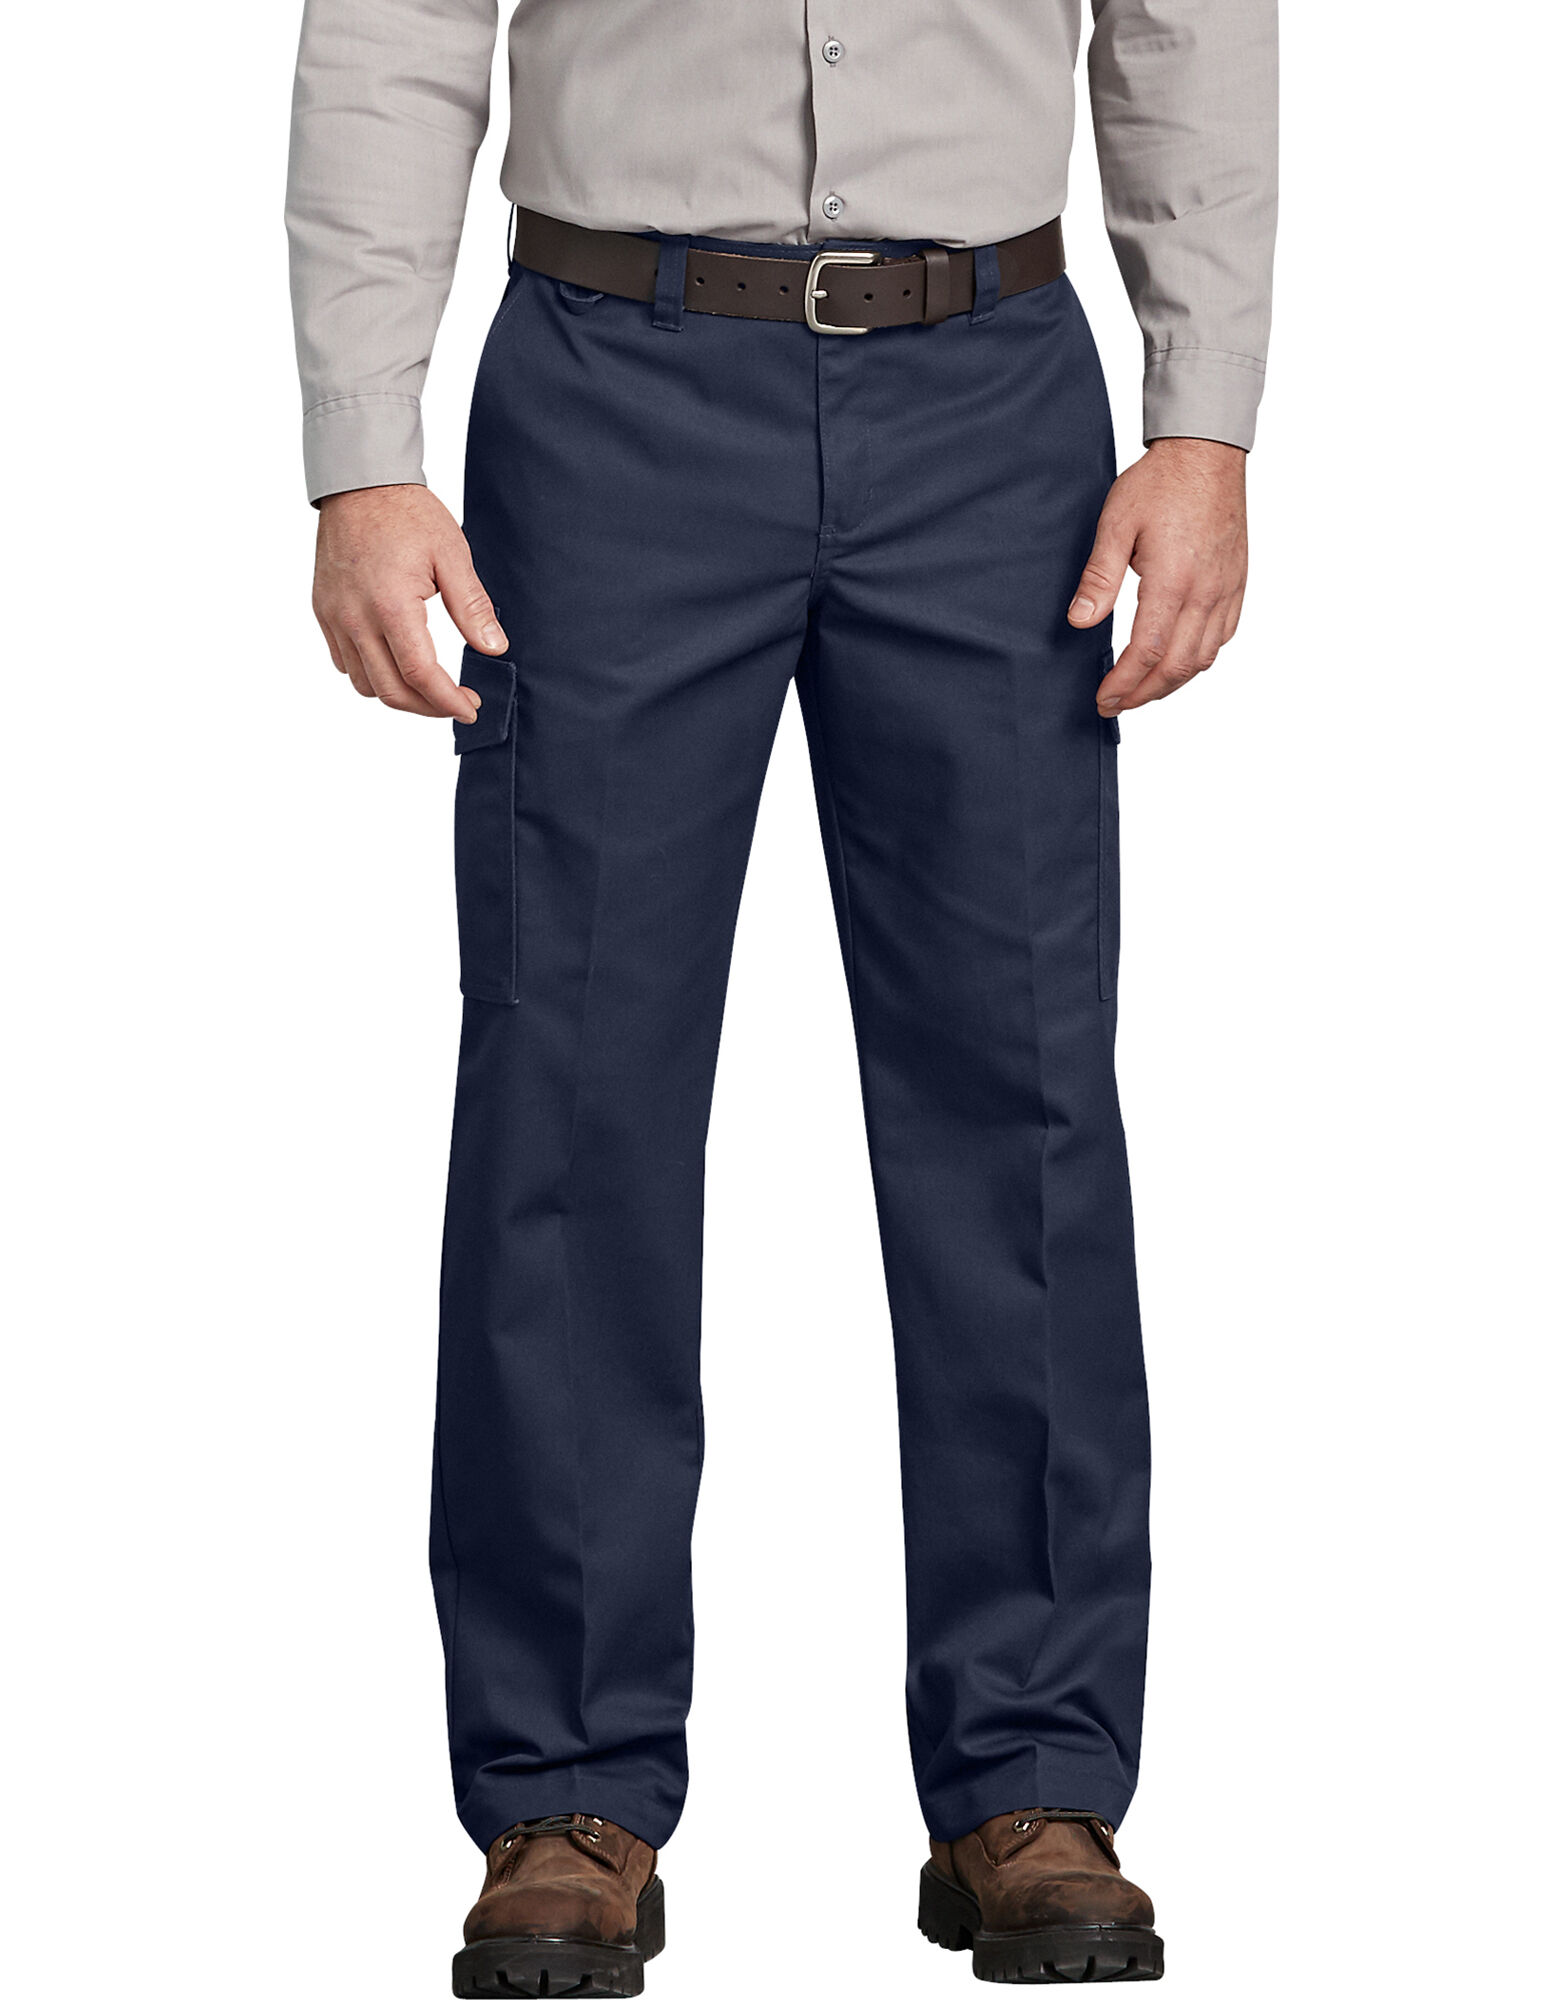 Industrial Relaxed Fit Straight Leg Cargo Pant   Mens ...